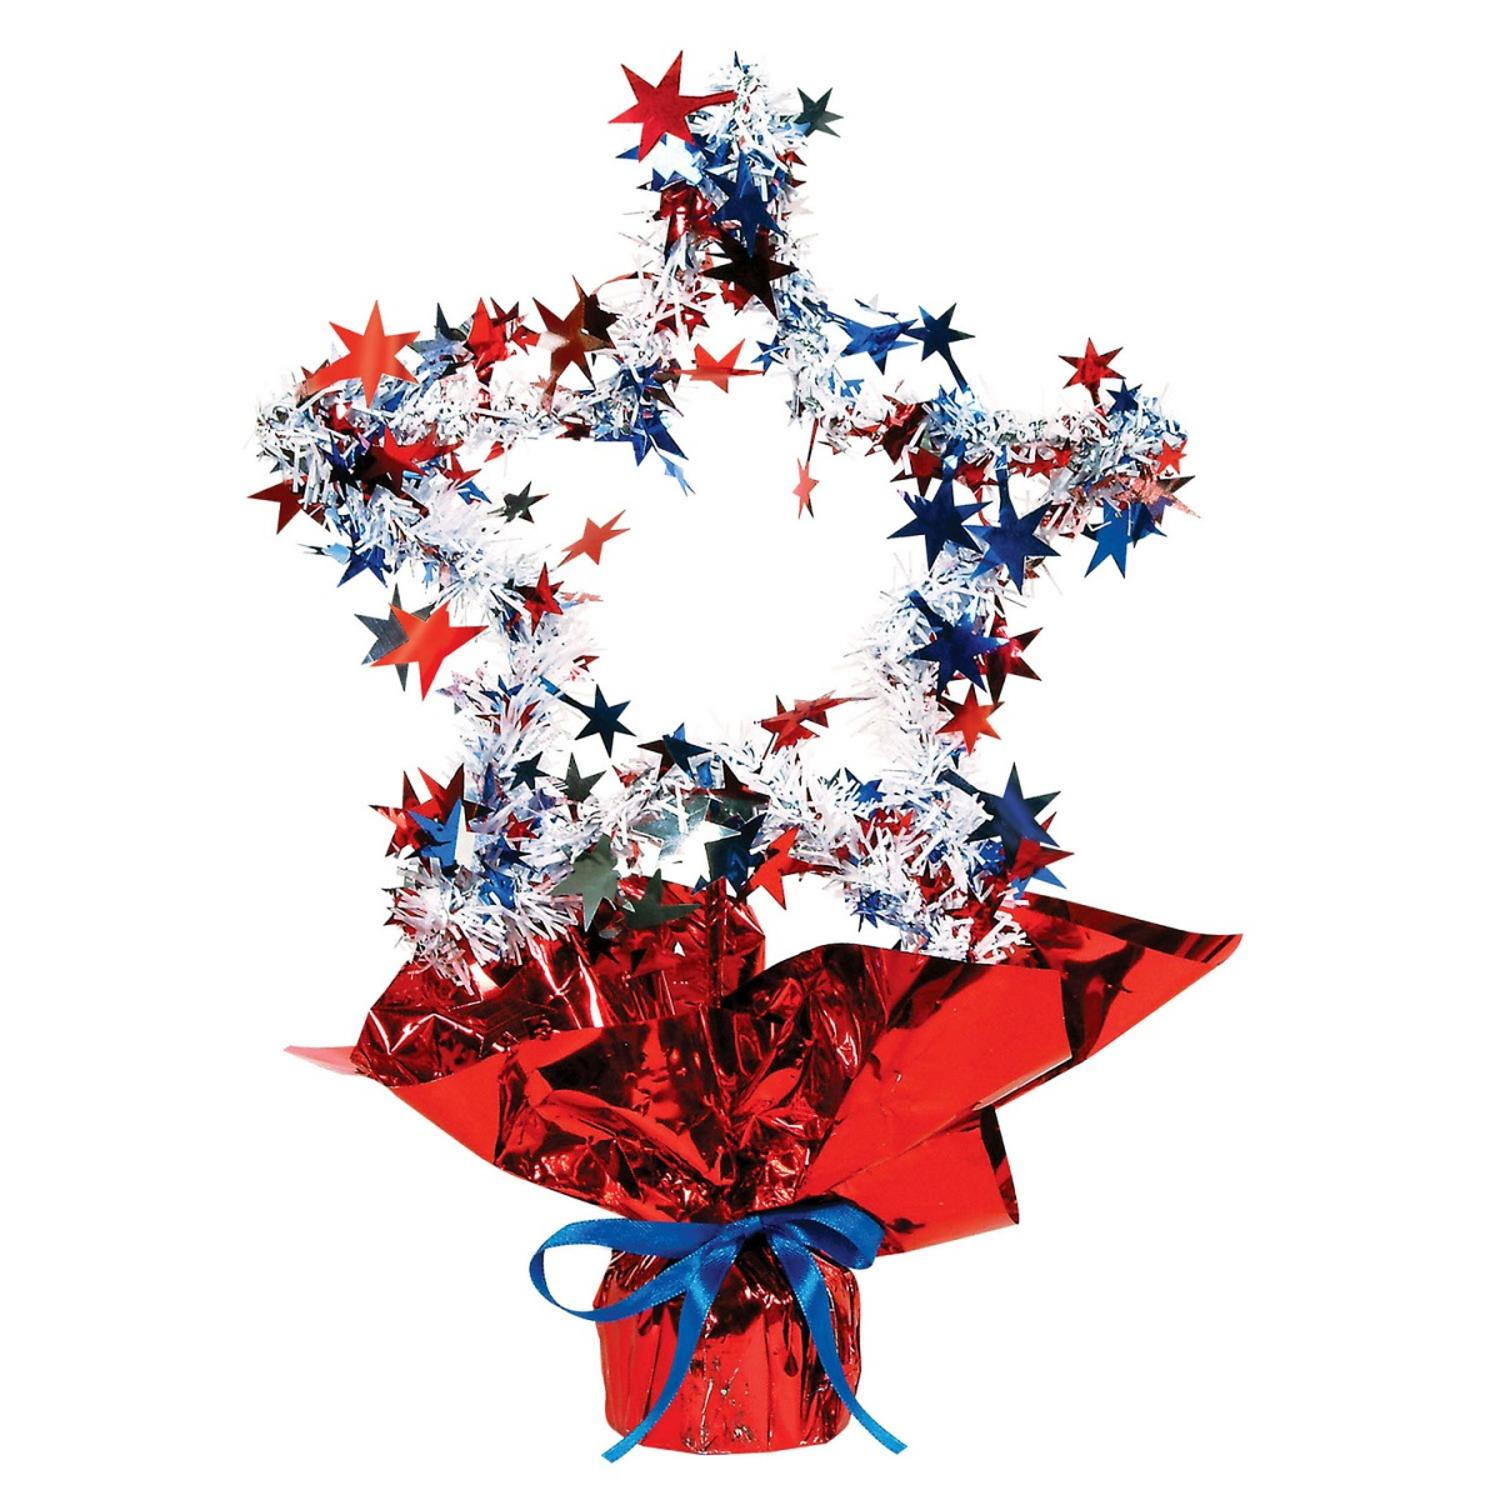 Club Pack of 12 Metallic Red, White and Blue Star Gleam 'N Shape 4th of July Centerpieces 11.5''